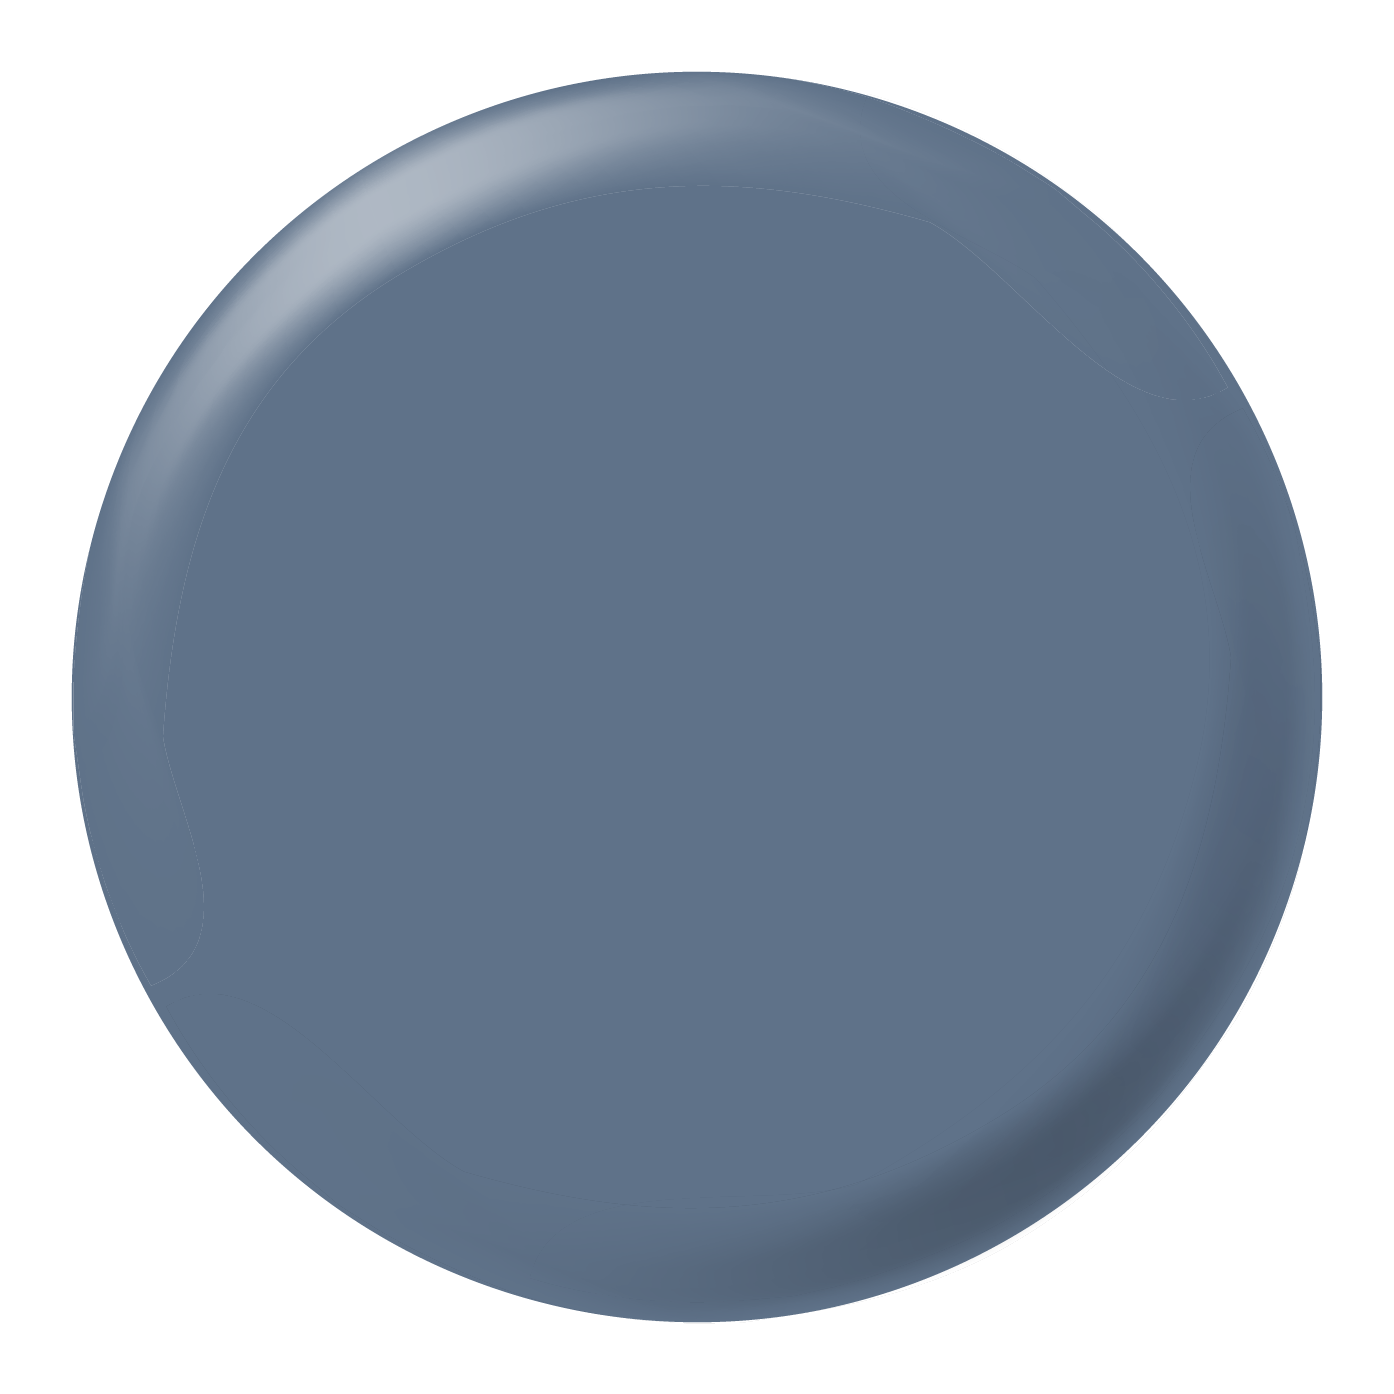 Blue Depths 0626 available at Harris Paints and BH Paints in the Caribbean.